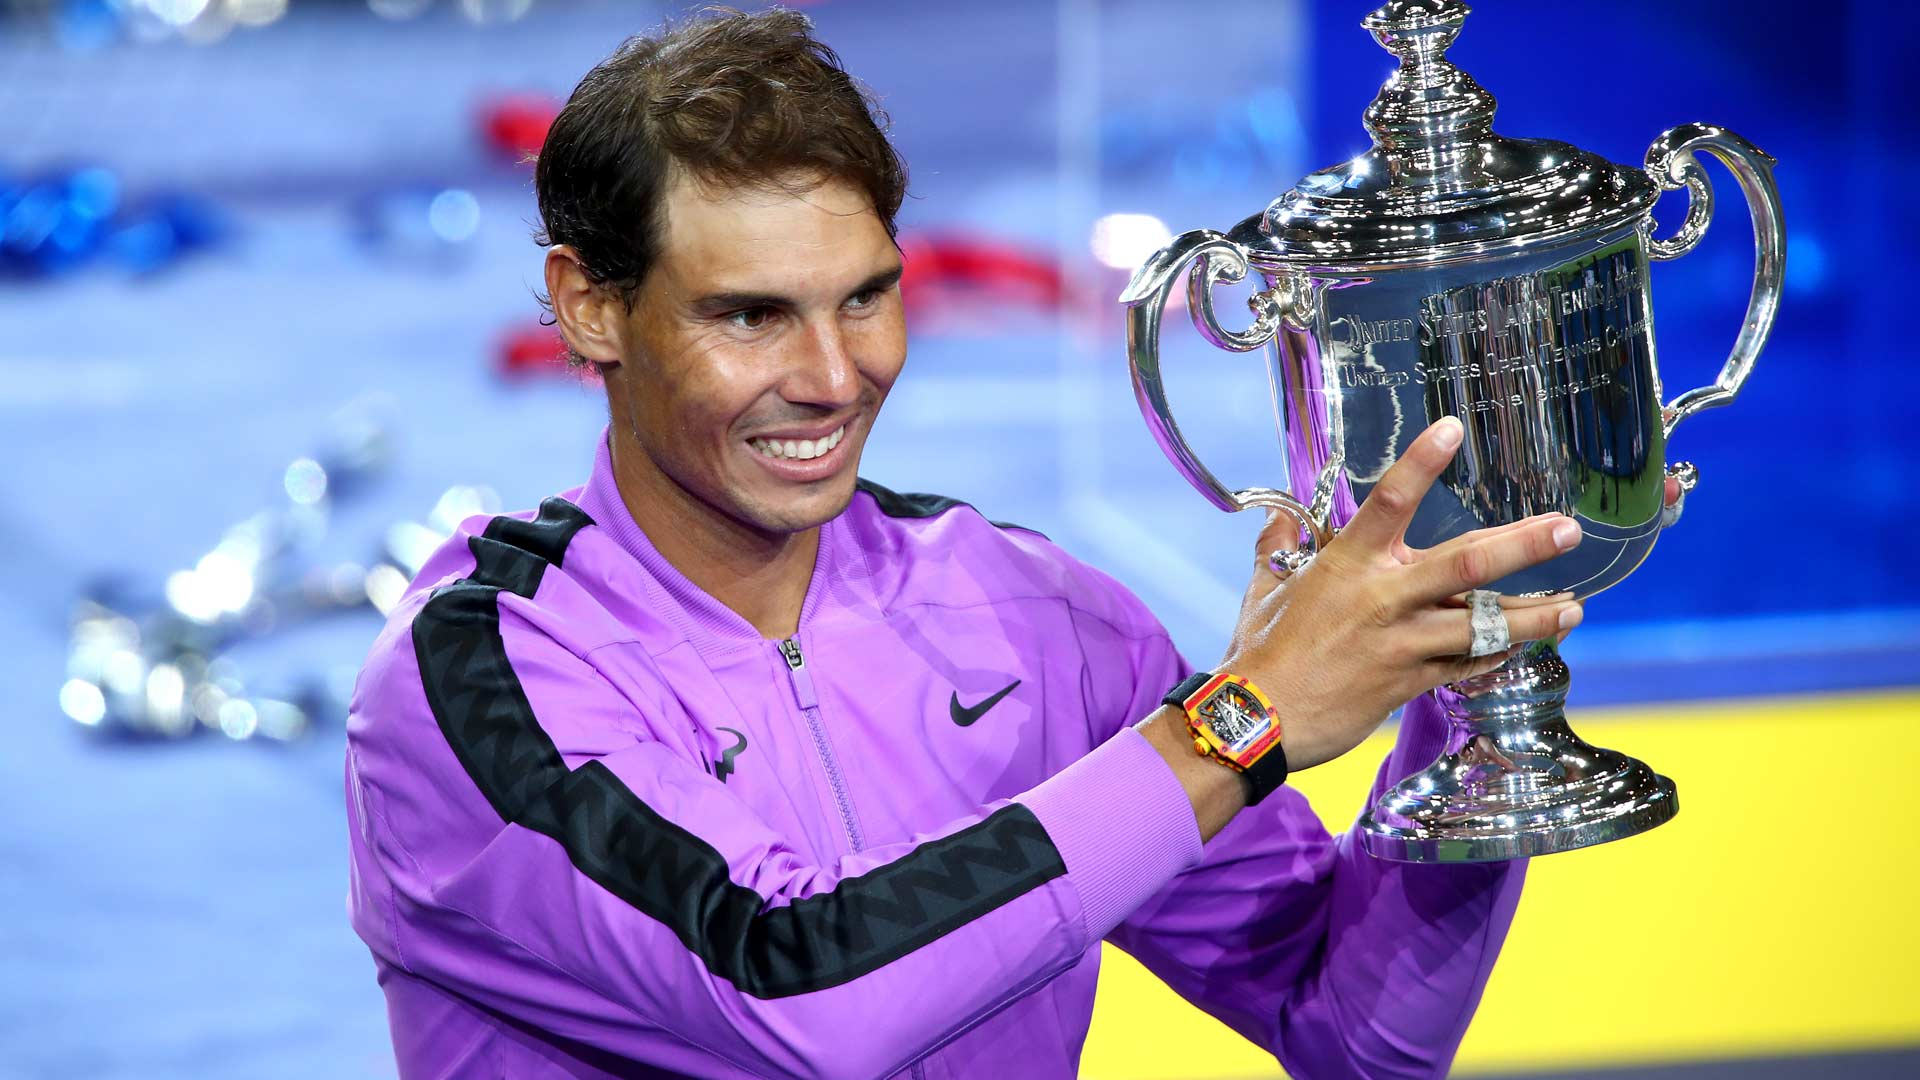 Rafael Nadal This Trophy Means Everything To Me Atp Tour Tennis